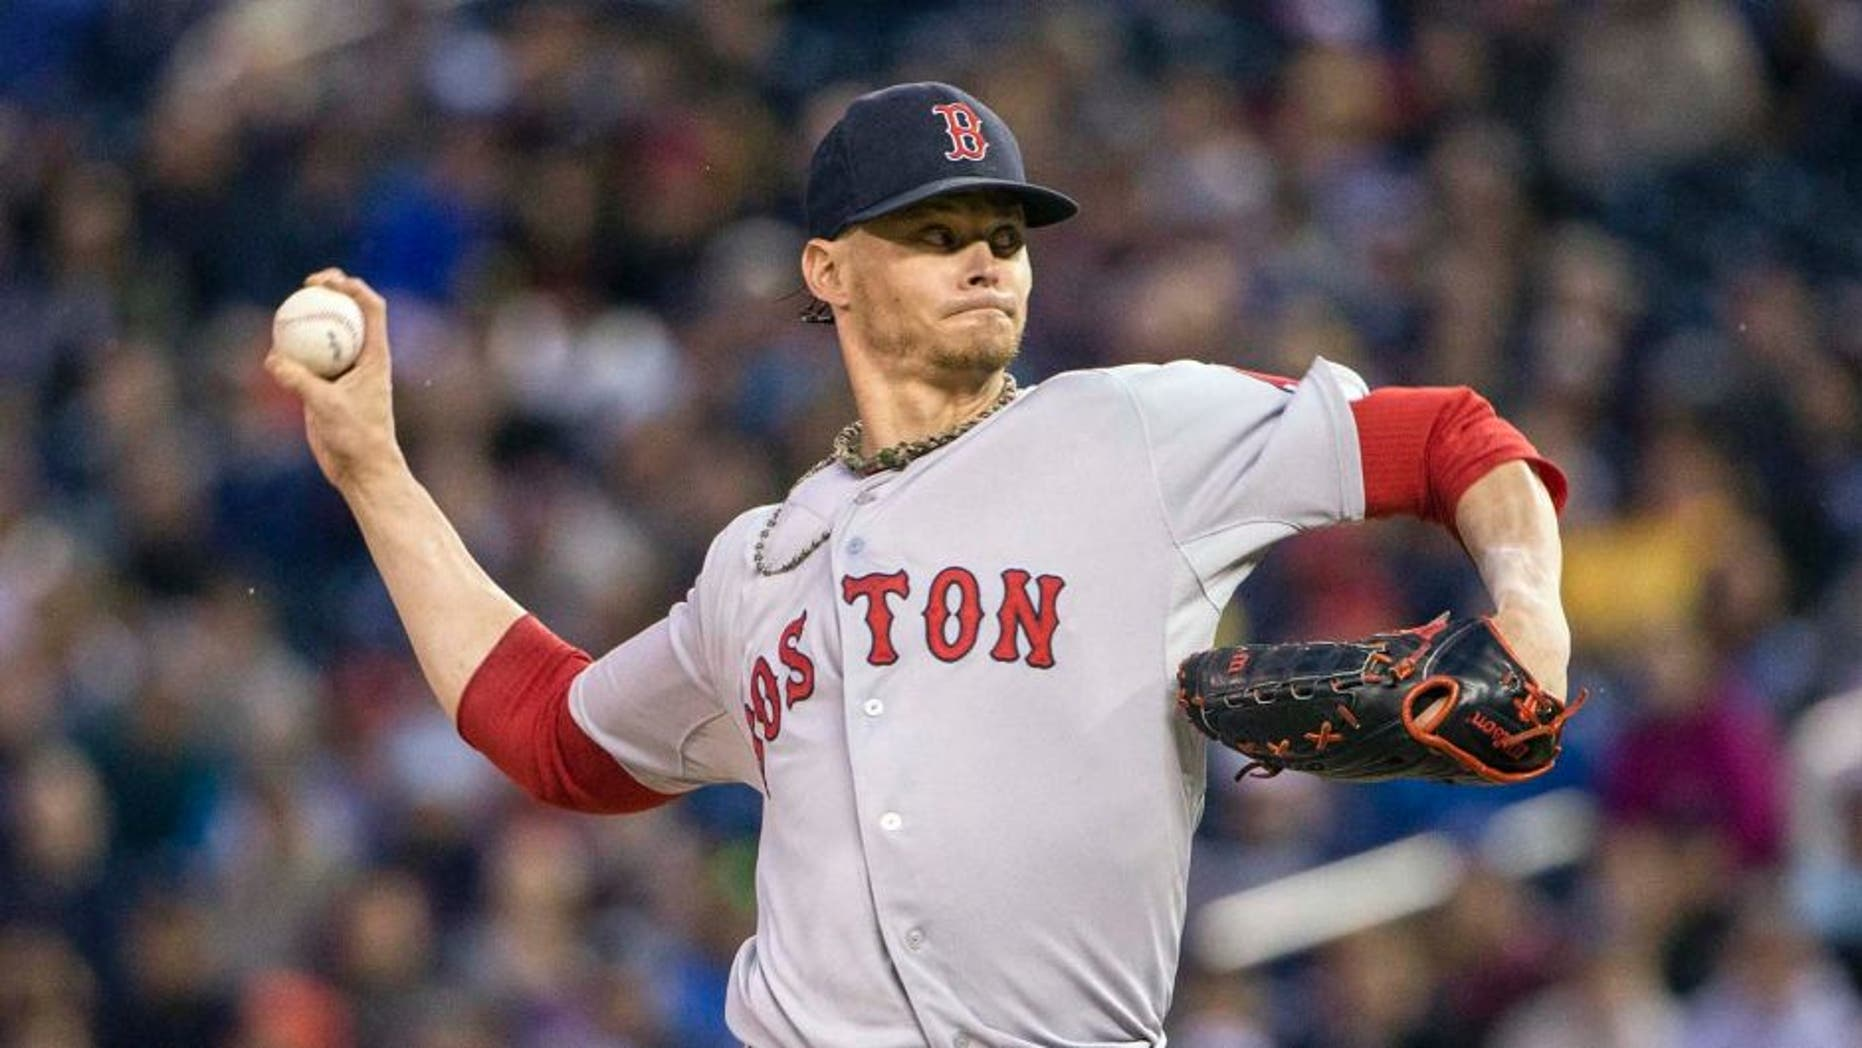 May 26, 2015; Minneapolis, MN, USA; Boston Red Sox starting pitcher Clay Buchholz delivers a pitch in the first inning against the Minnesota Twins at Target Field.